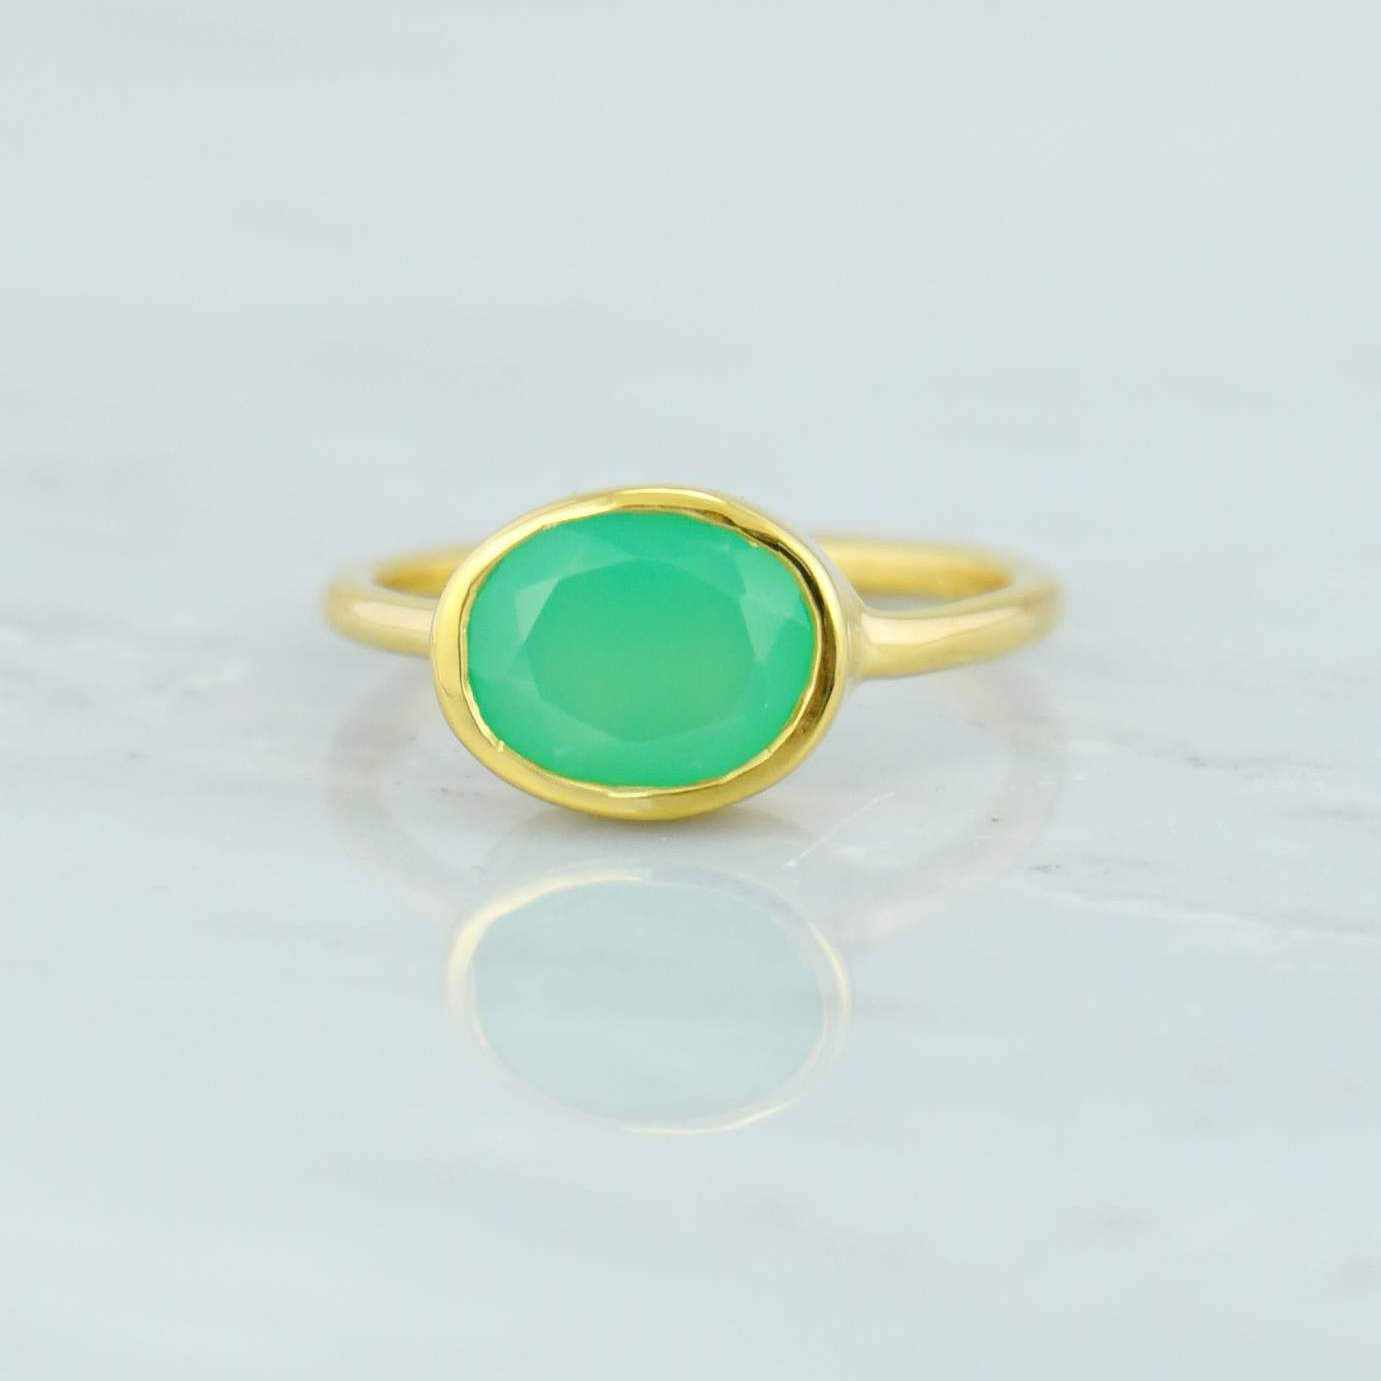 14k Solid Gold Ring, Chrysoprase Ring, Gemstone Ring, Stacking ring, Simple ring, Natural Stone ring, Genuine Stone ring, Solid Gold ring